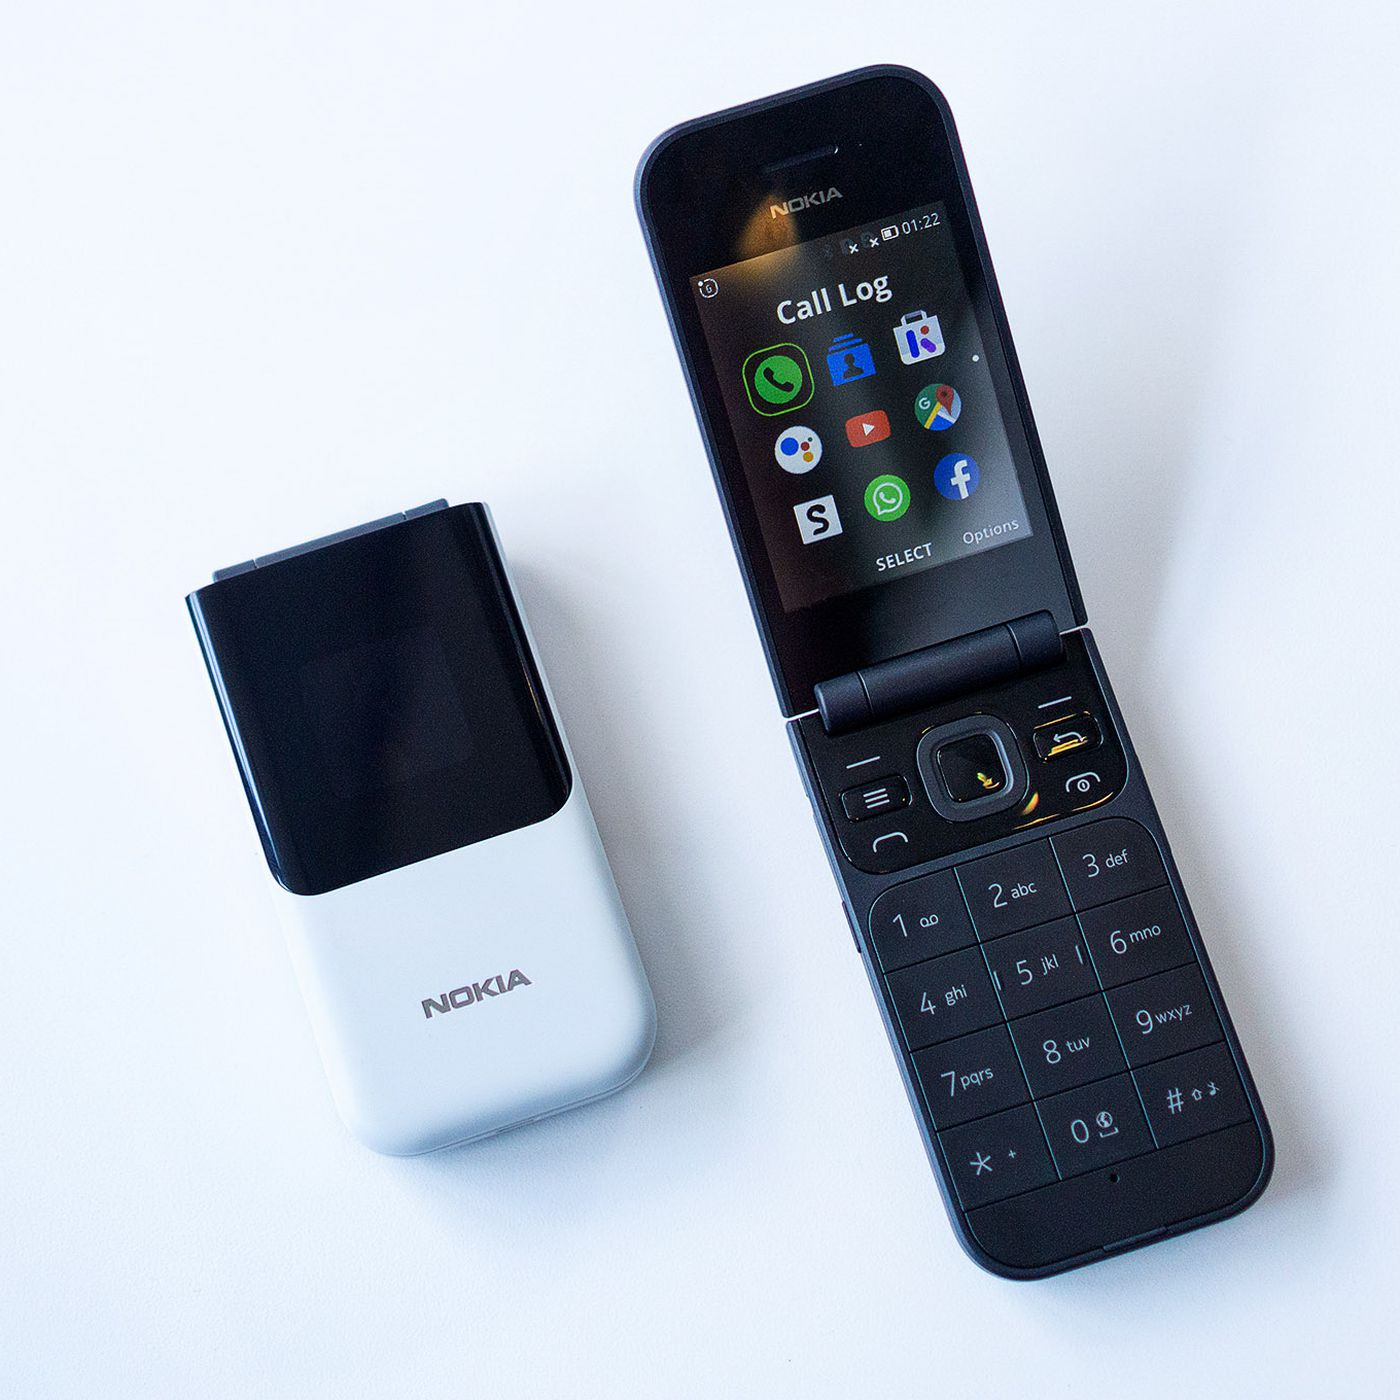 Nokia S Iconic 2720 Flip Phone Is The Latest Model To Be Resurrected By Hmd The Verge